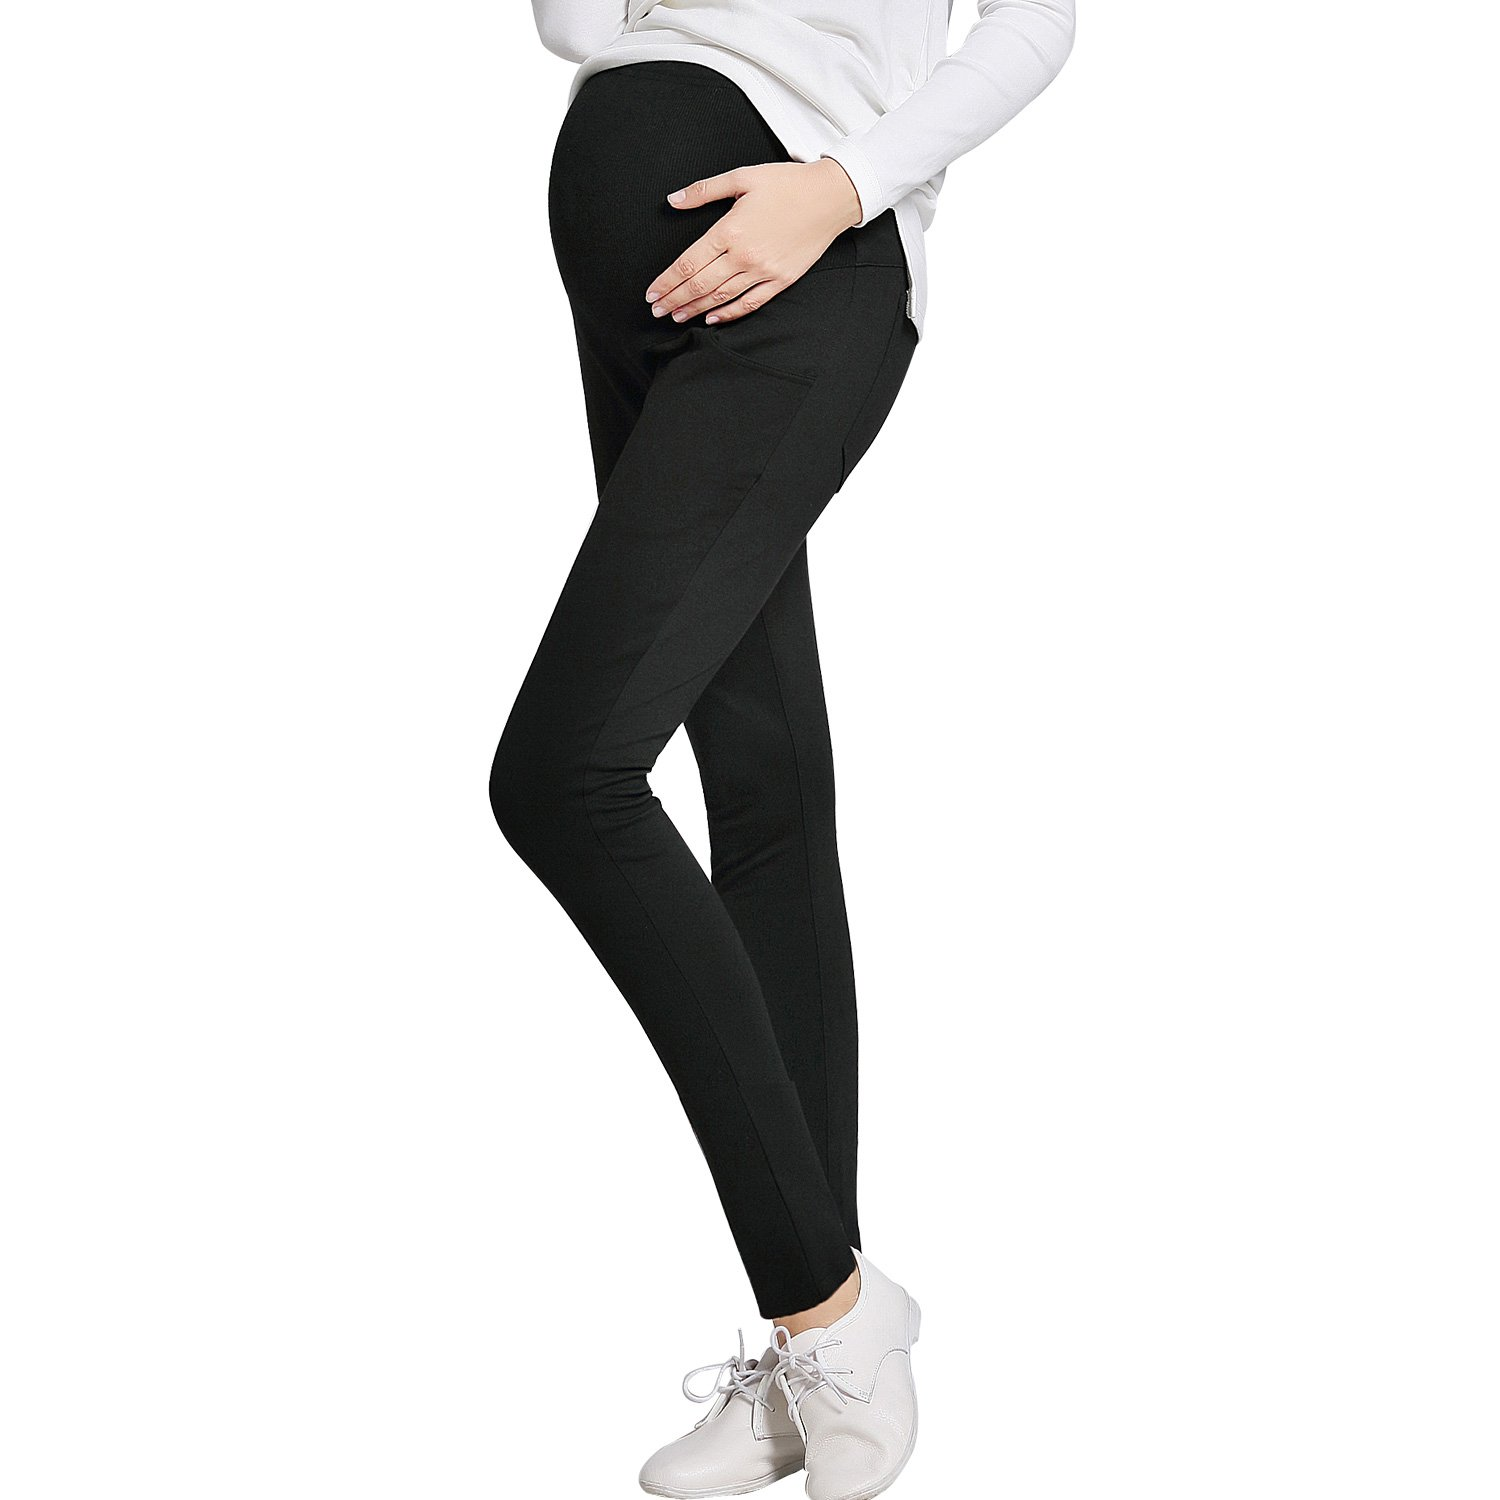 JOYNCLEON Pregnant Women Work Pants Stretchy Maternity Skinny Ankle Trousers Slim for Women (Label XL = US 10-12 fit for Hip 36.6'', Black-0005)